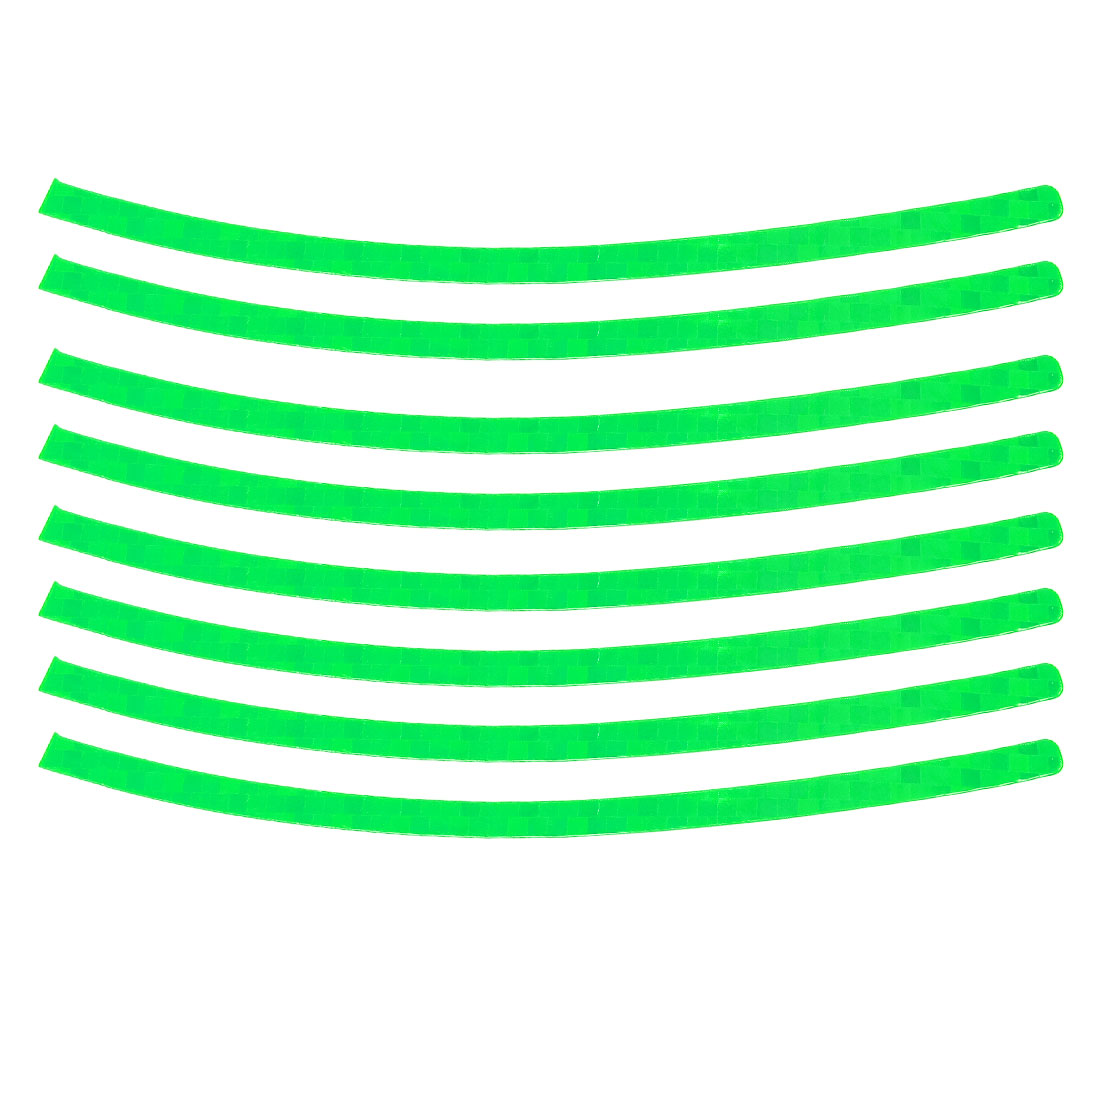 8 Pcs Vehicle Decor Green Curved Strips Reflective Wheel Decals